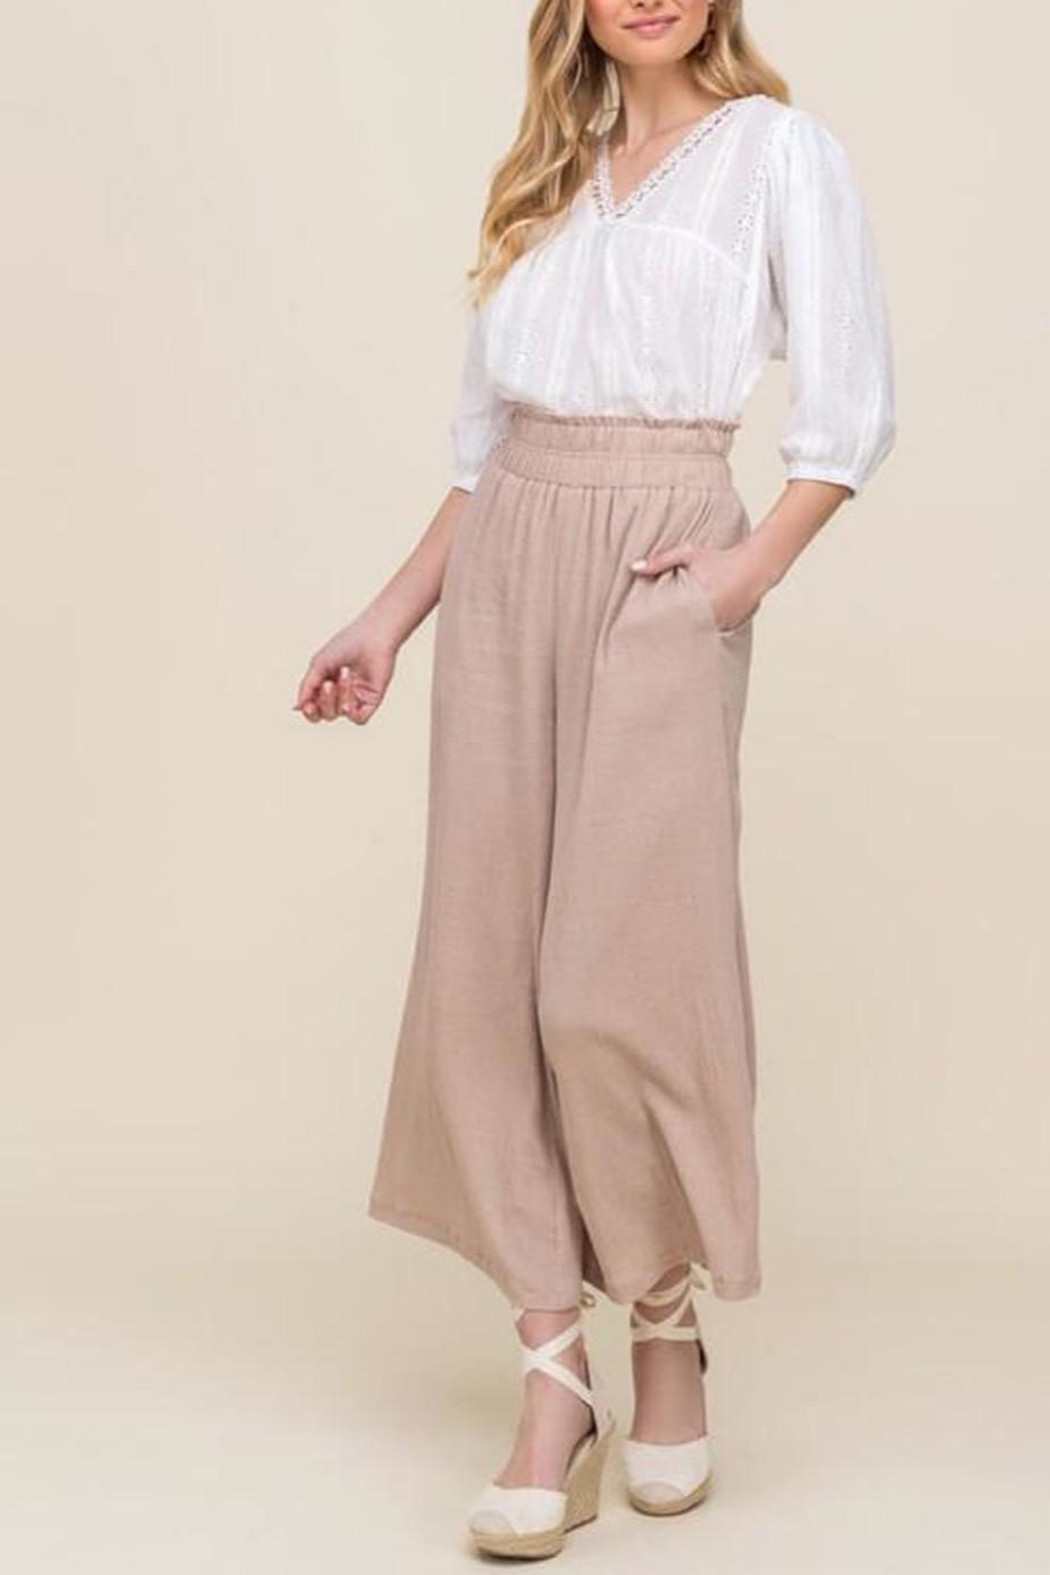 All In Favor Eyelet Balloon-Sleeve Top - Side Cropped Image